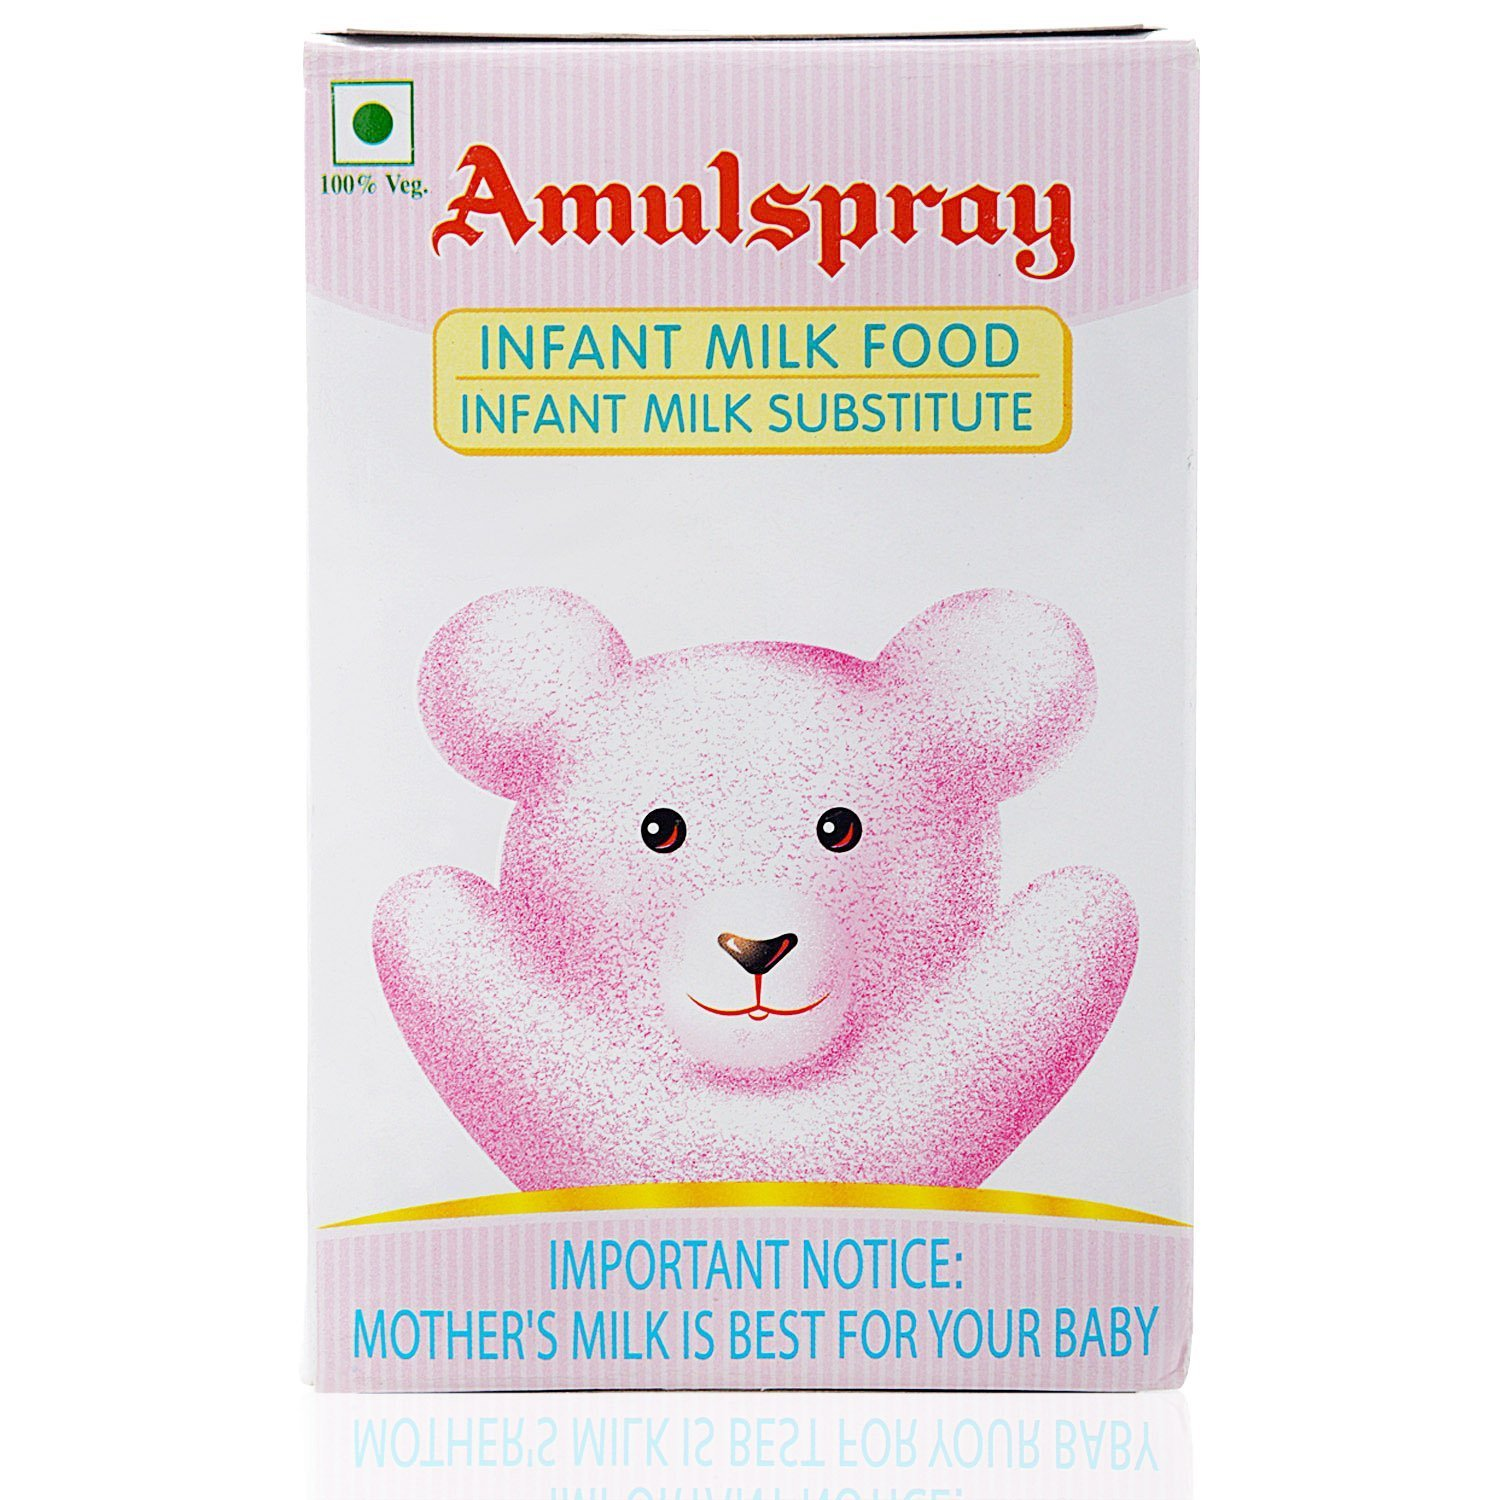 Amul Spray Infact Milk 500 gm